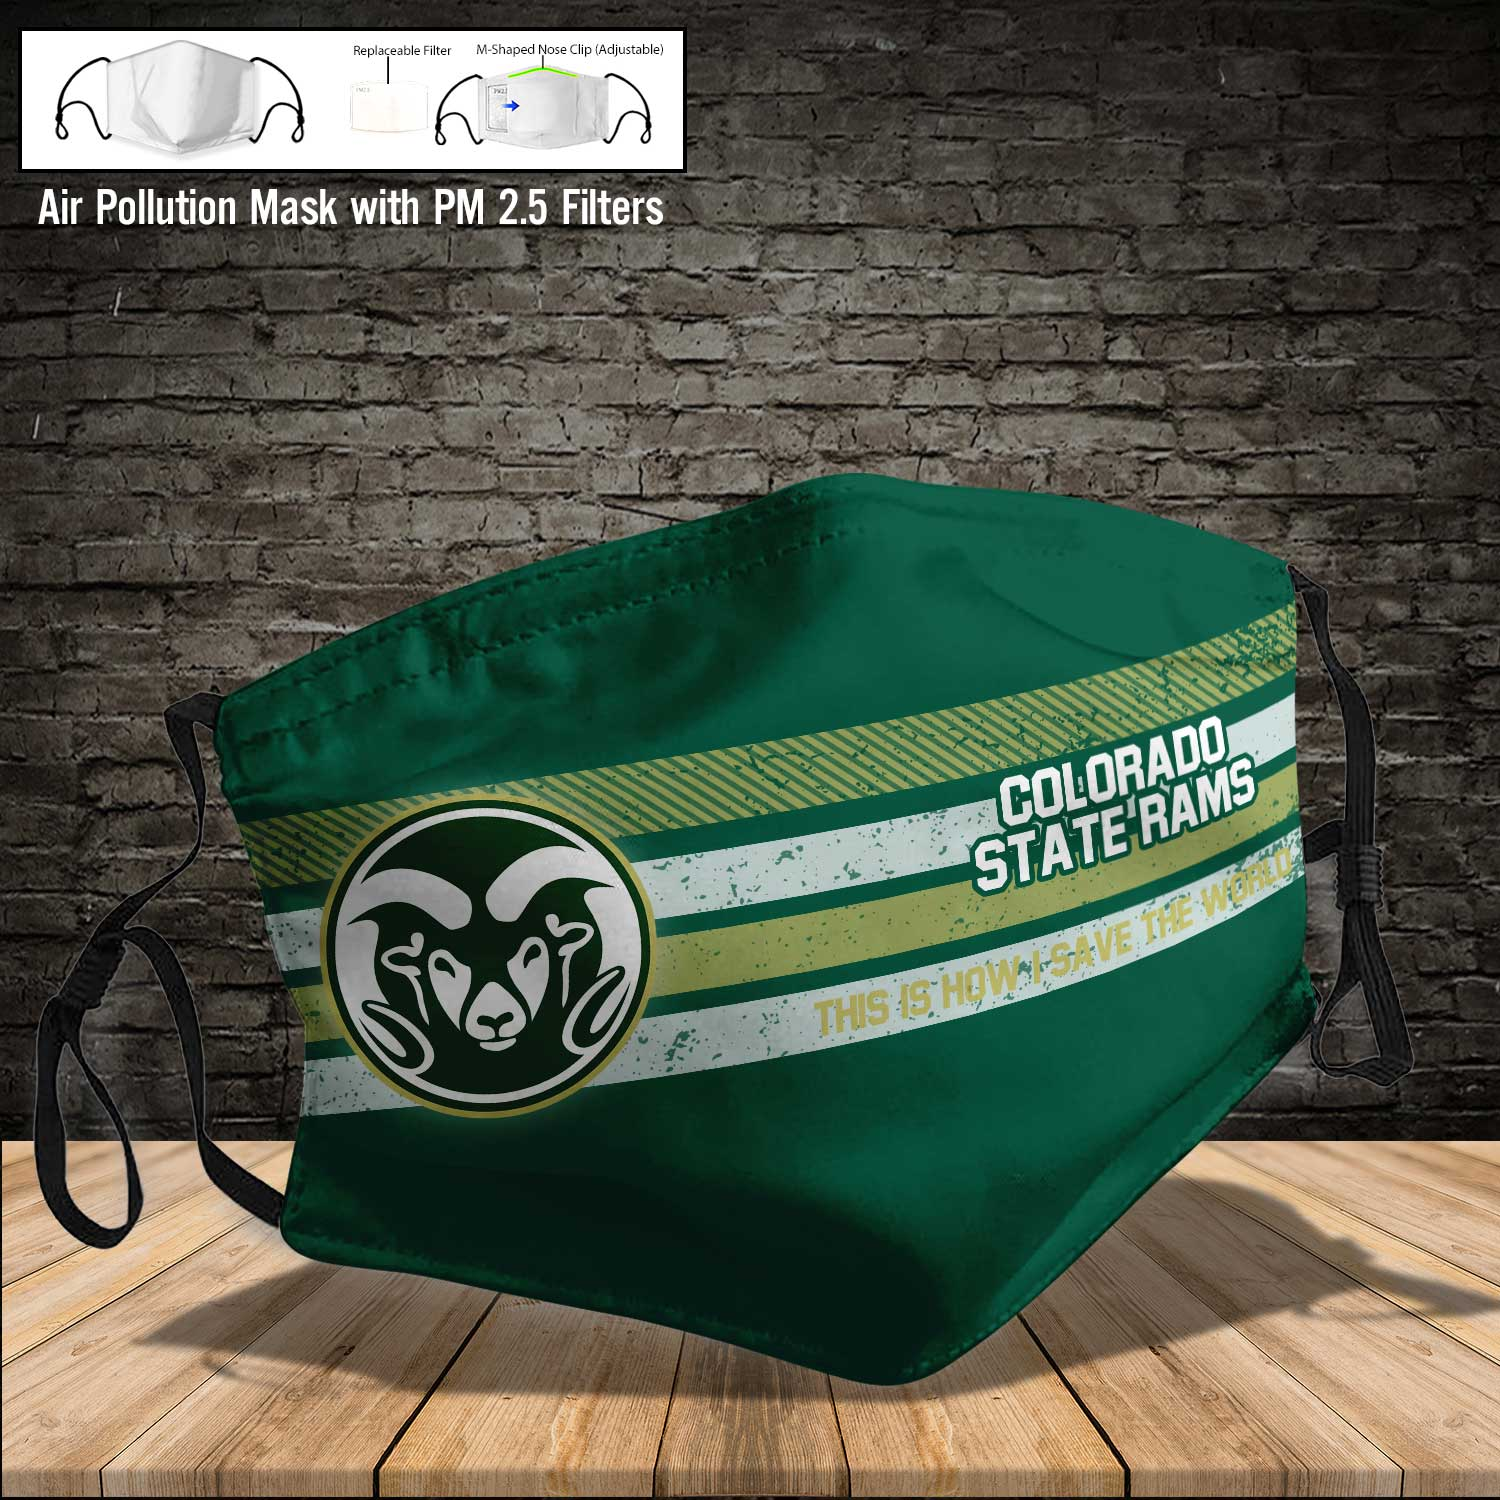 Colorado state rams this is how i save the world face mask 4